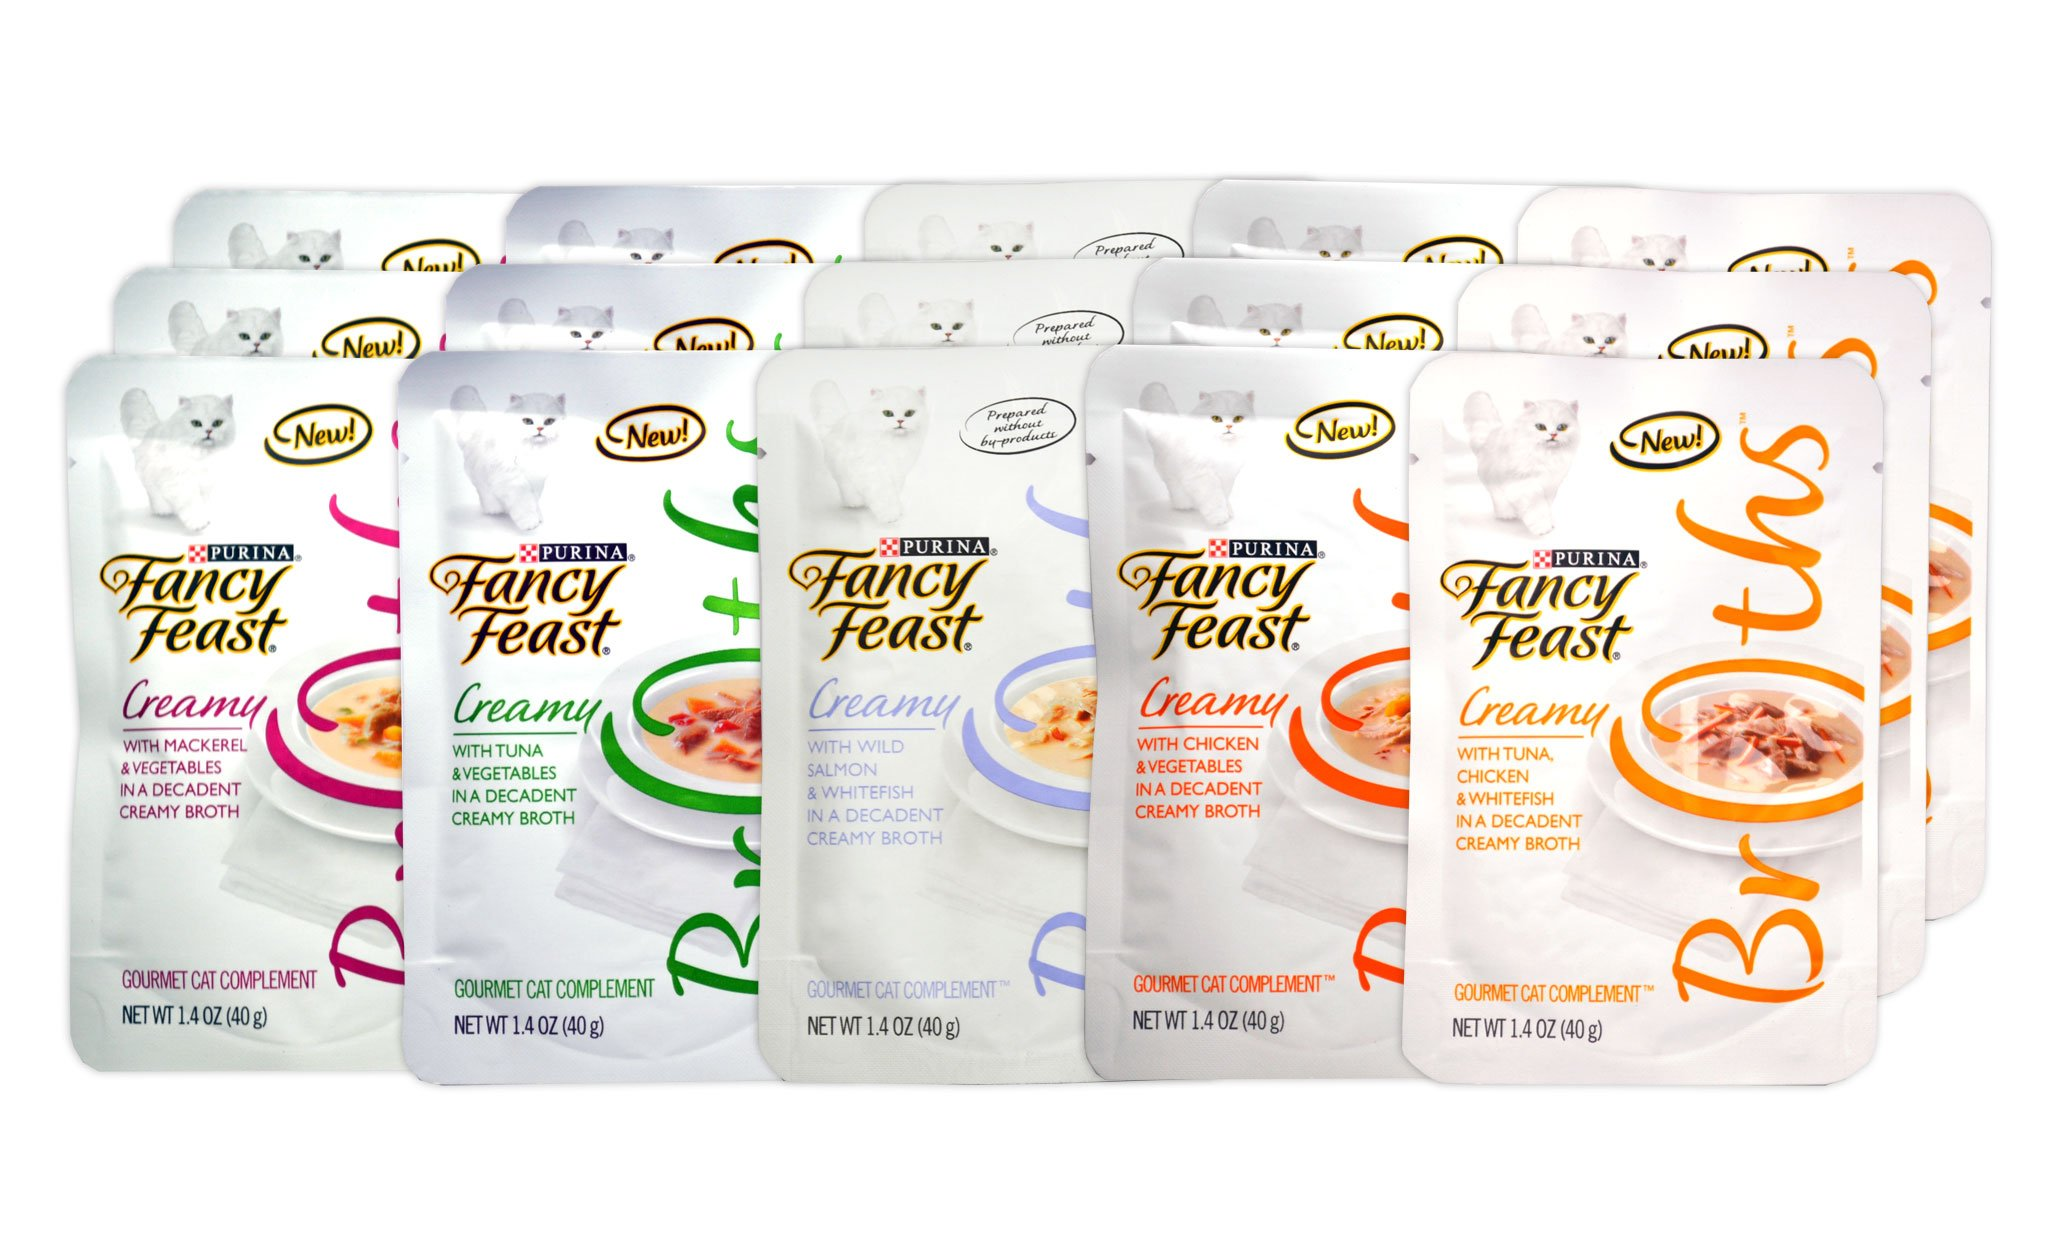 Fancy Feast Gourmet Creamy Broths Variety Pack for Cats - 5 Creamy Broth Flavors - 1.4 Oz Each (15 Total Pouches) by Fancy Feast